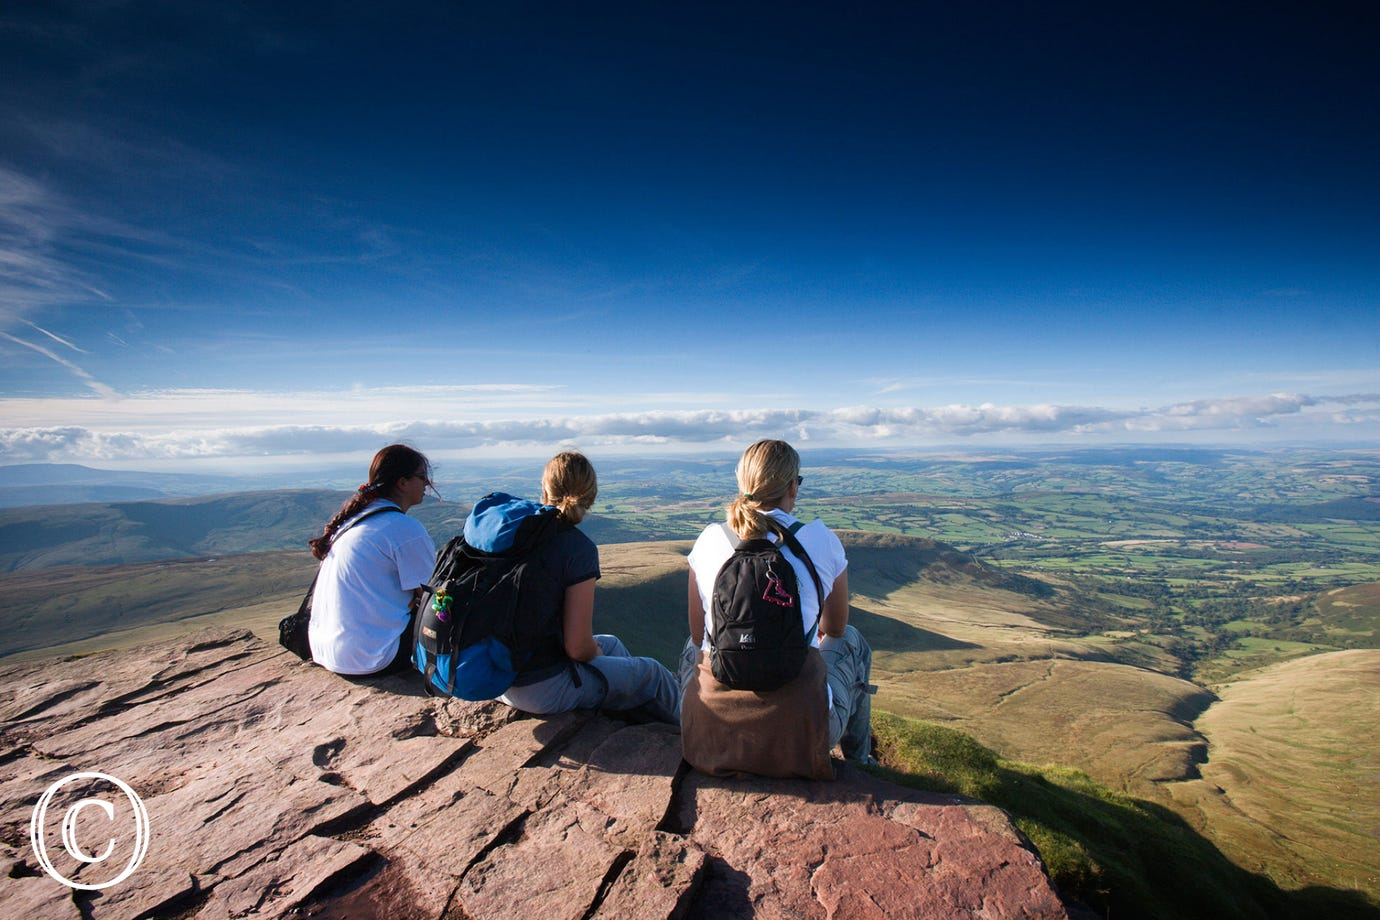 Looking out from one of the many peaks in the Brecon Beacons